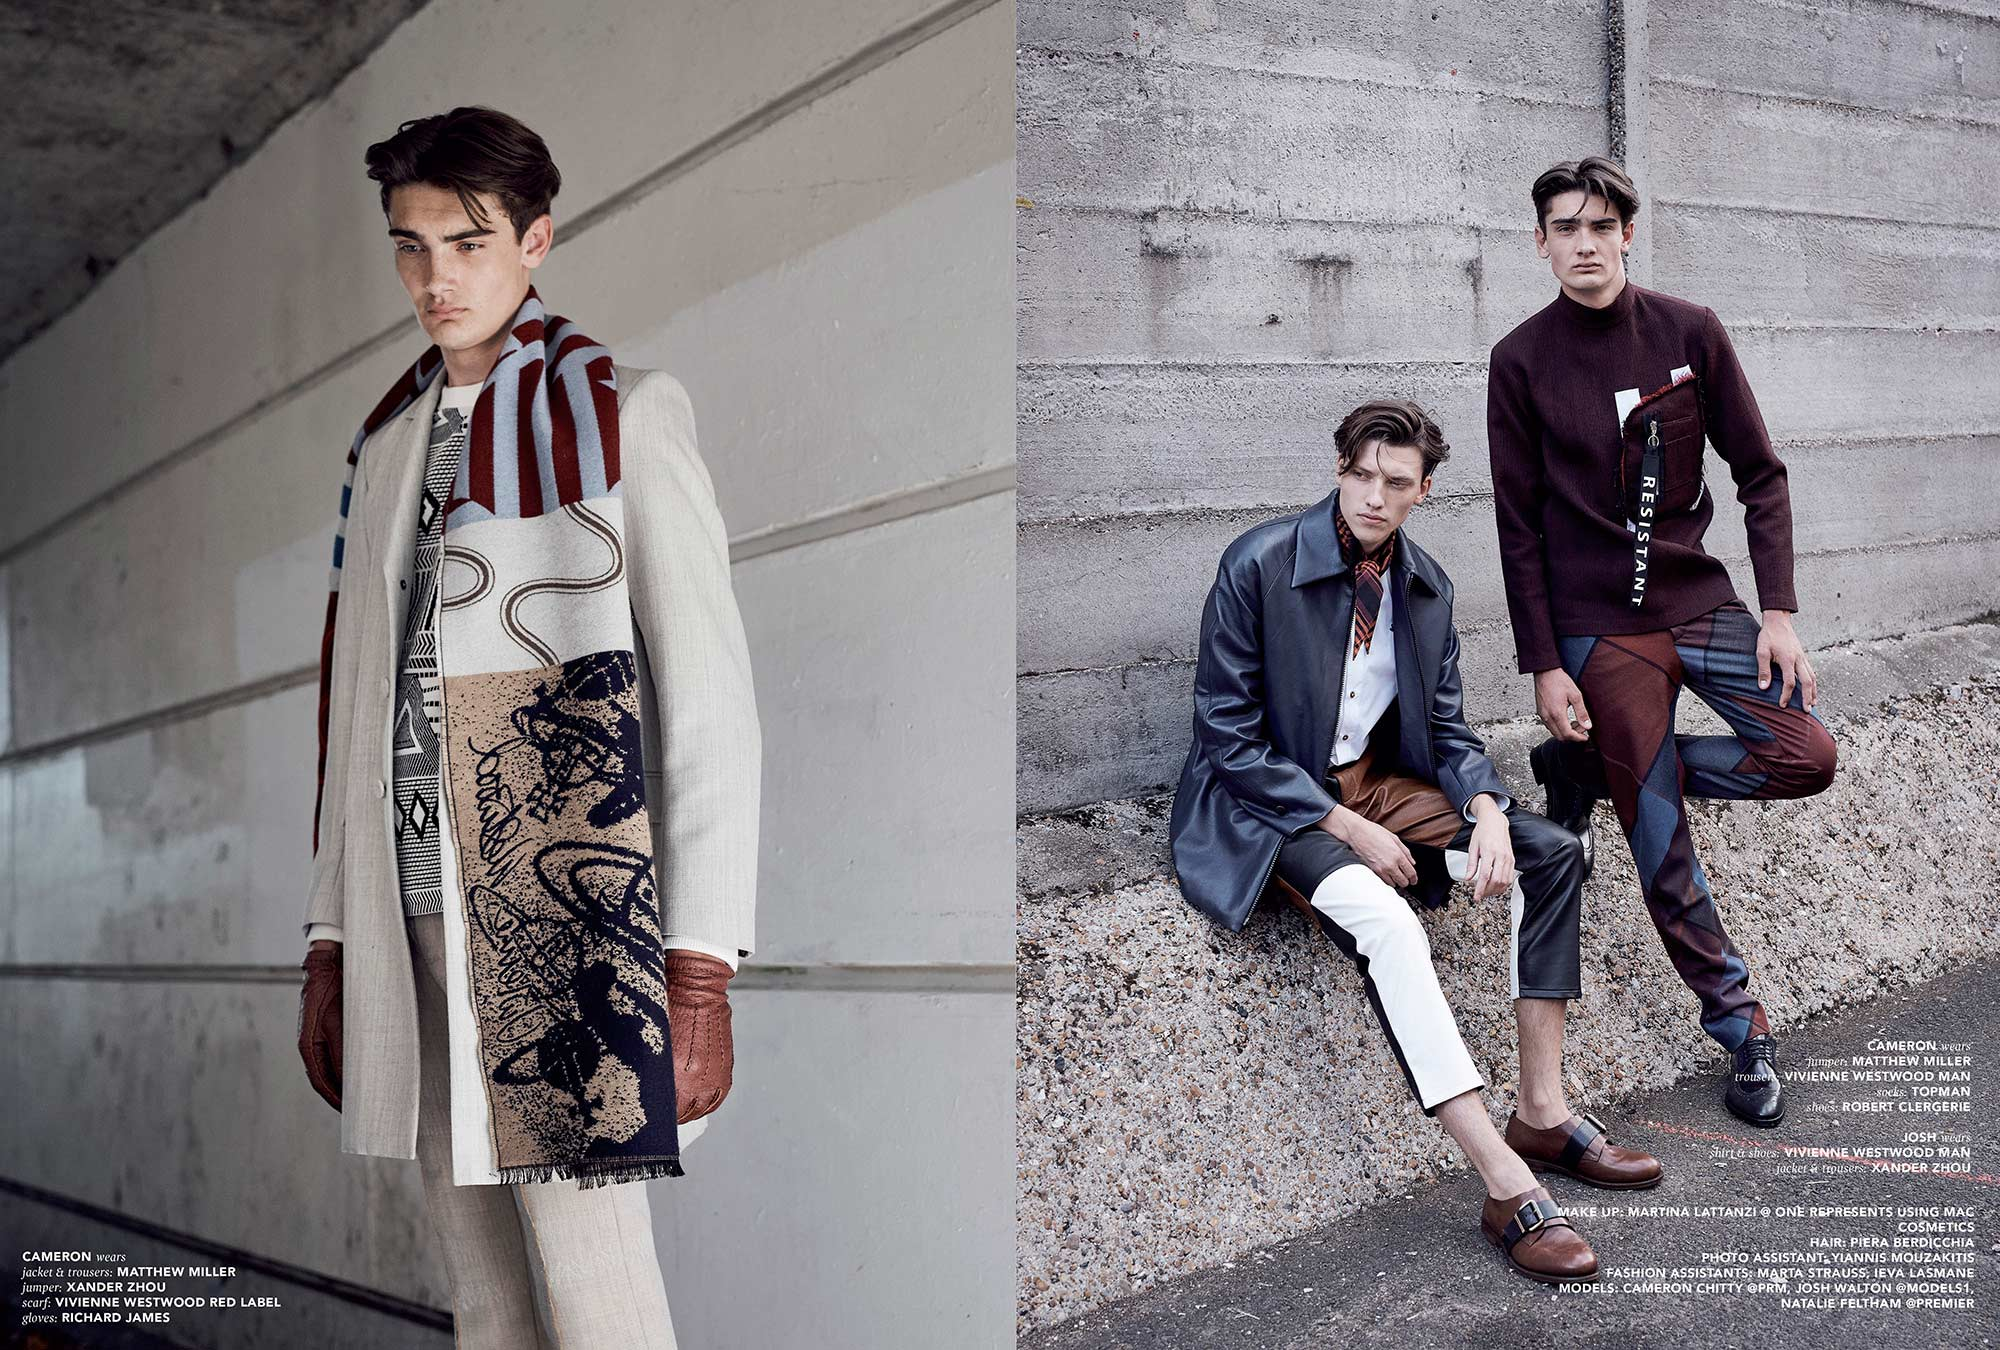 Florian renner streets mag aw15 05